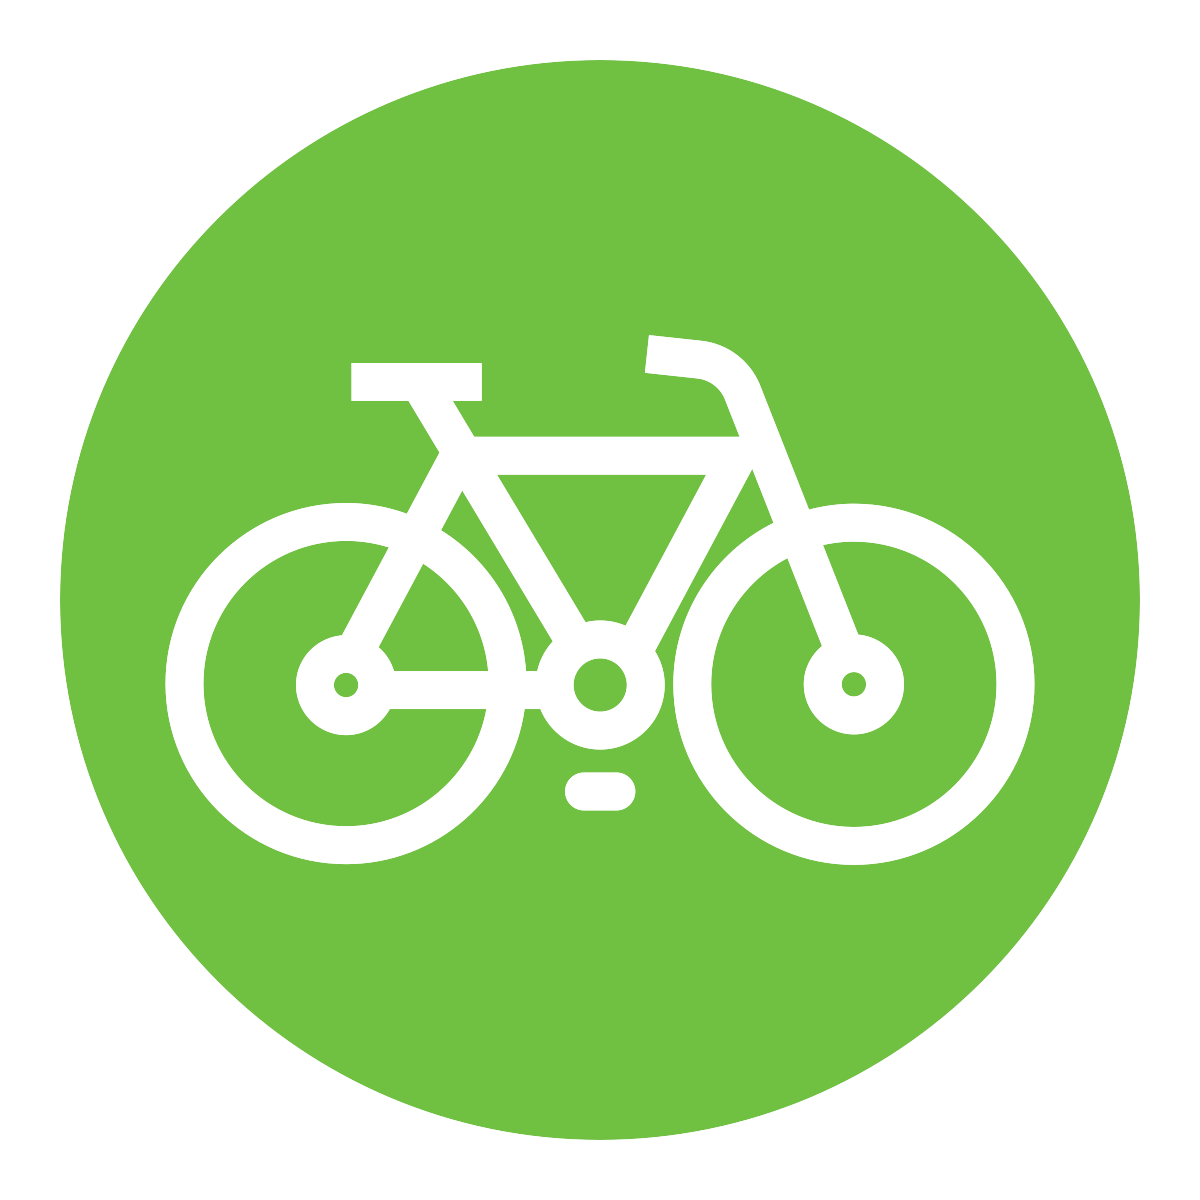 Clipart bicycle green bike. Roy s sheepshead cycle